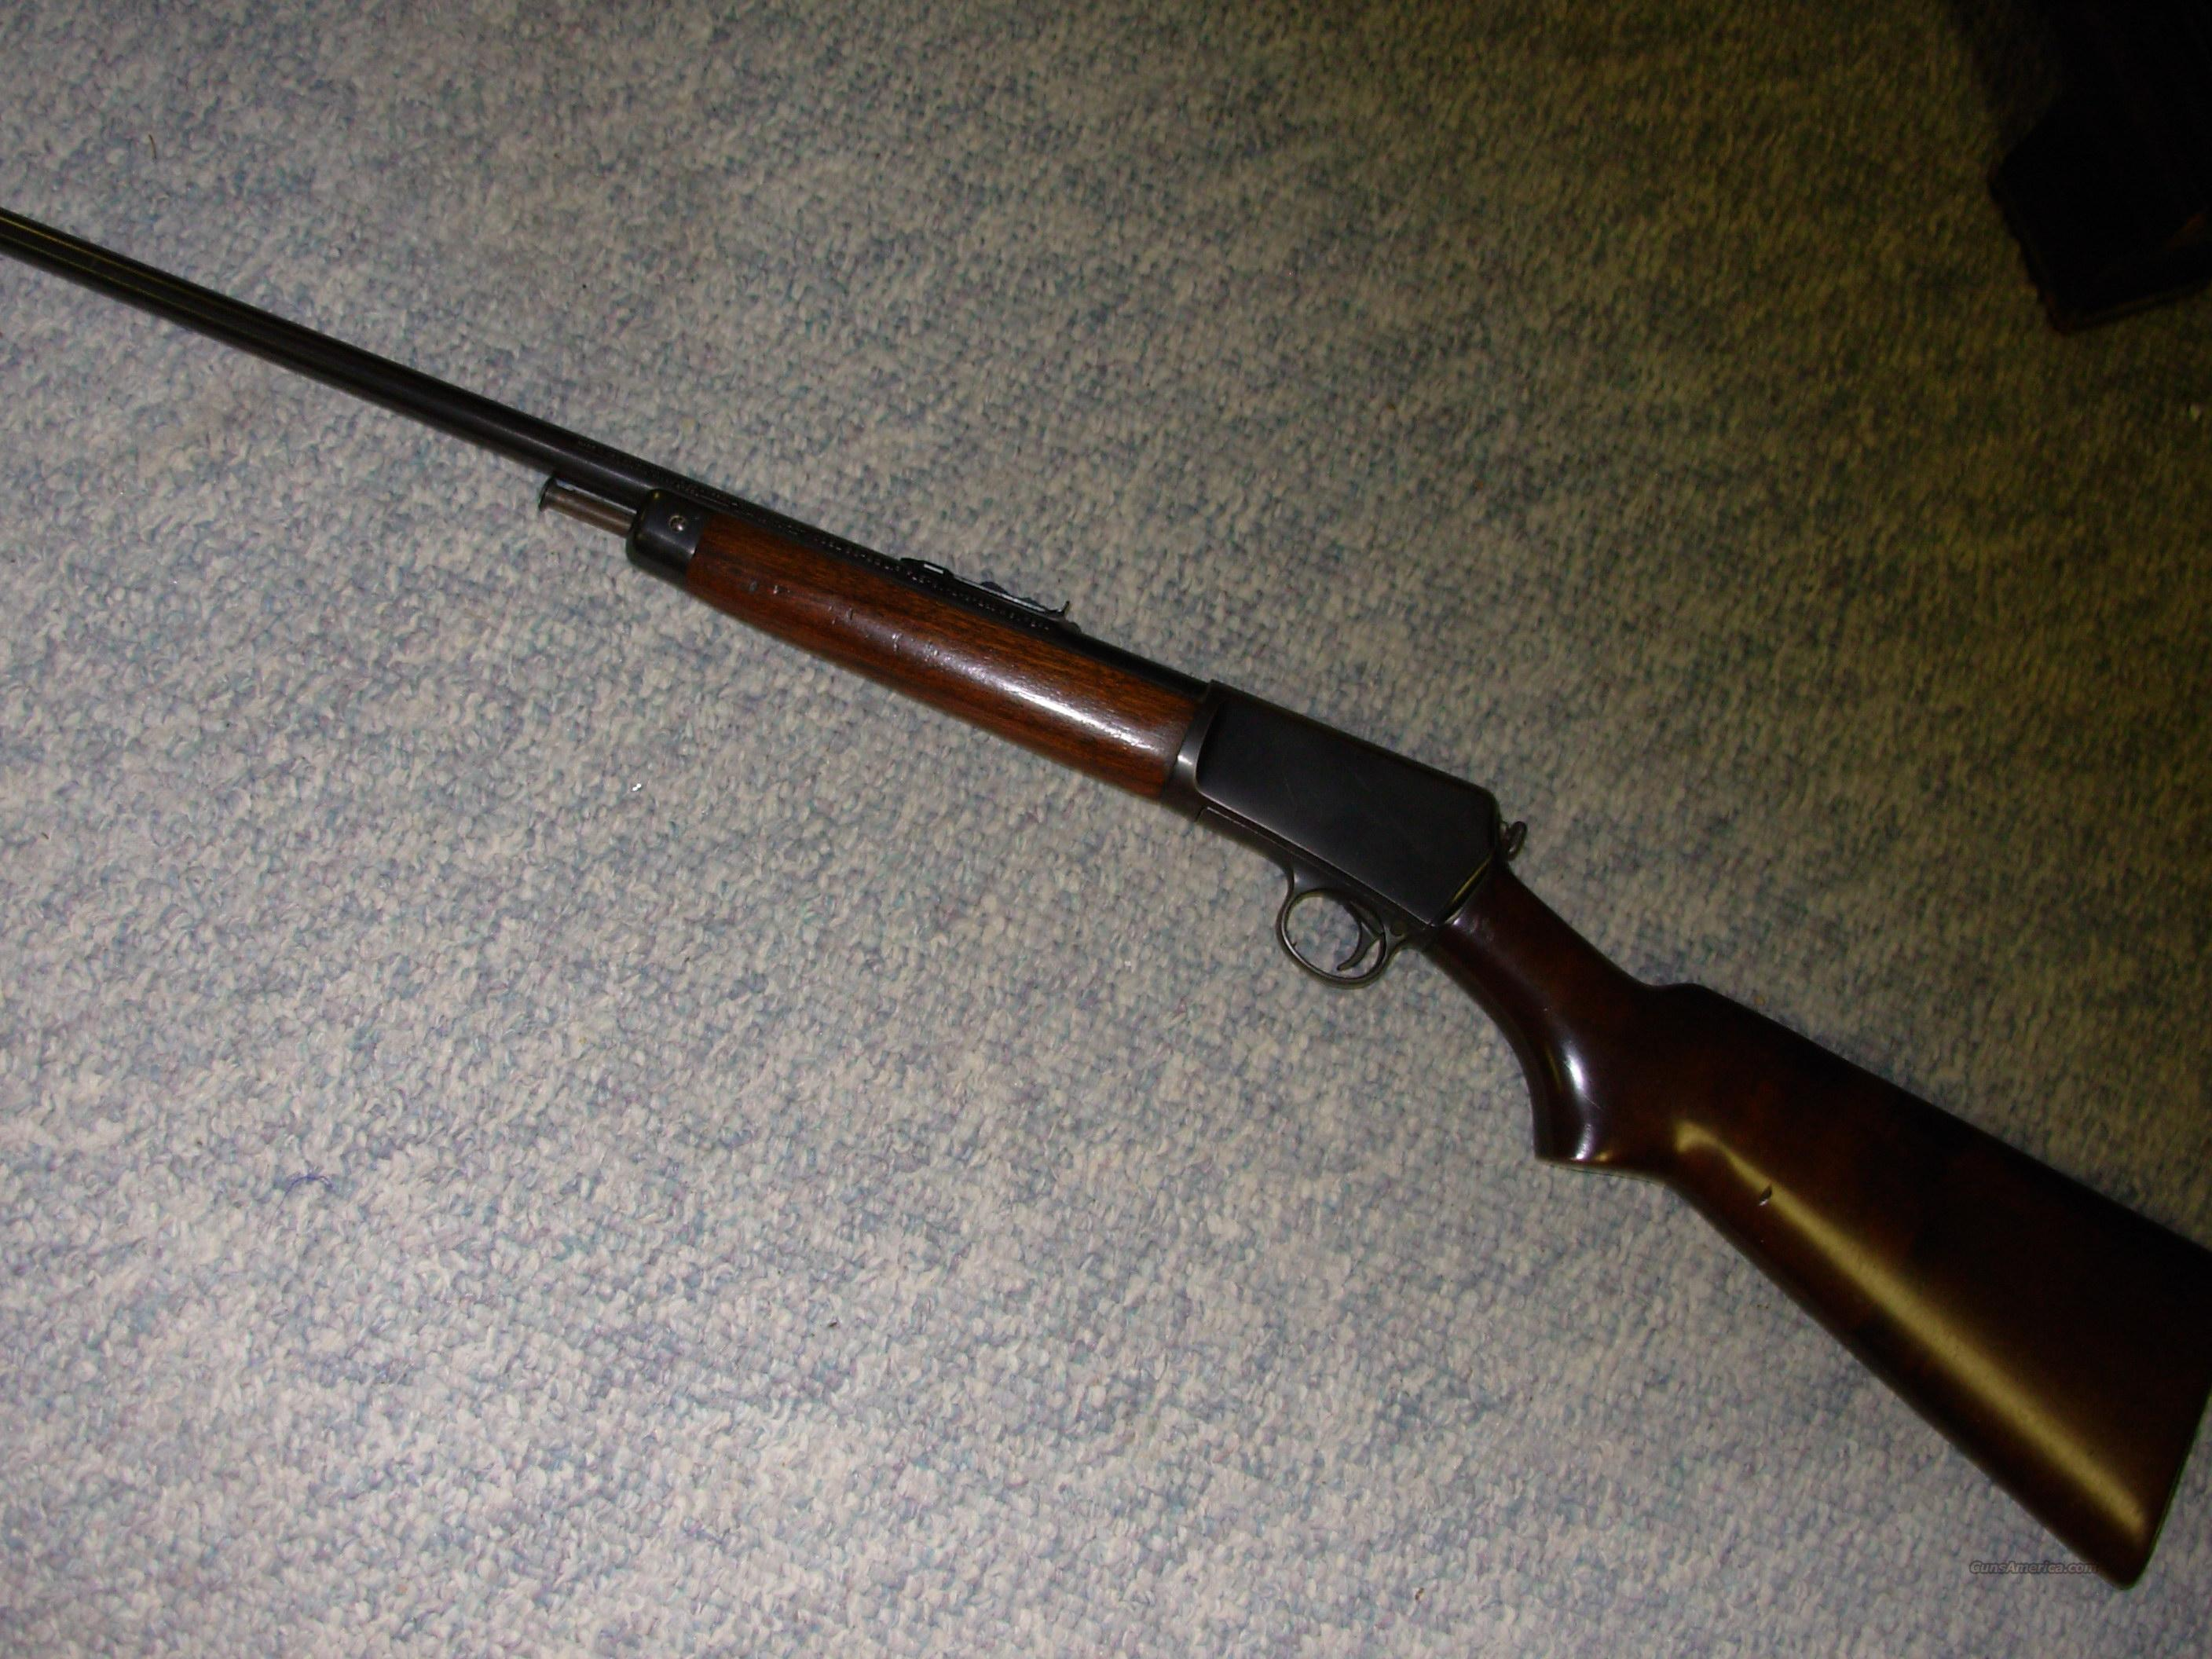 WINCHESTER MODEL 63, 22LR. SEMI-AUTO RIFLE  Guns > Rifles > Winchester Rifles - Modern Bolt/Auto/Single > Autoloaders